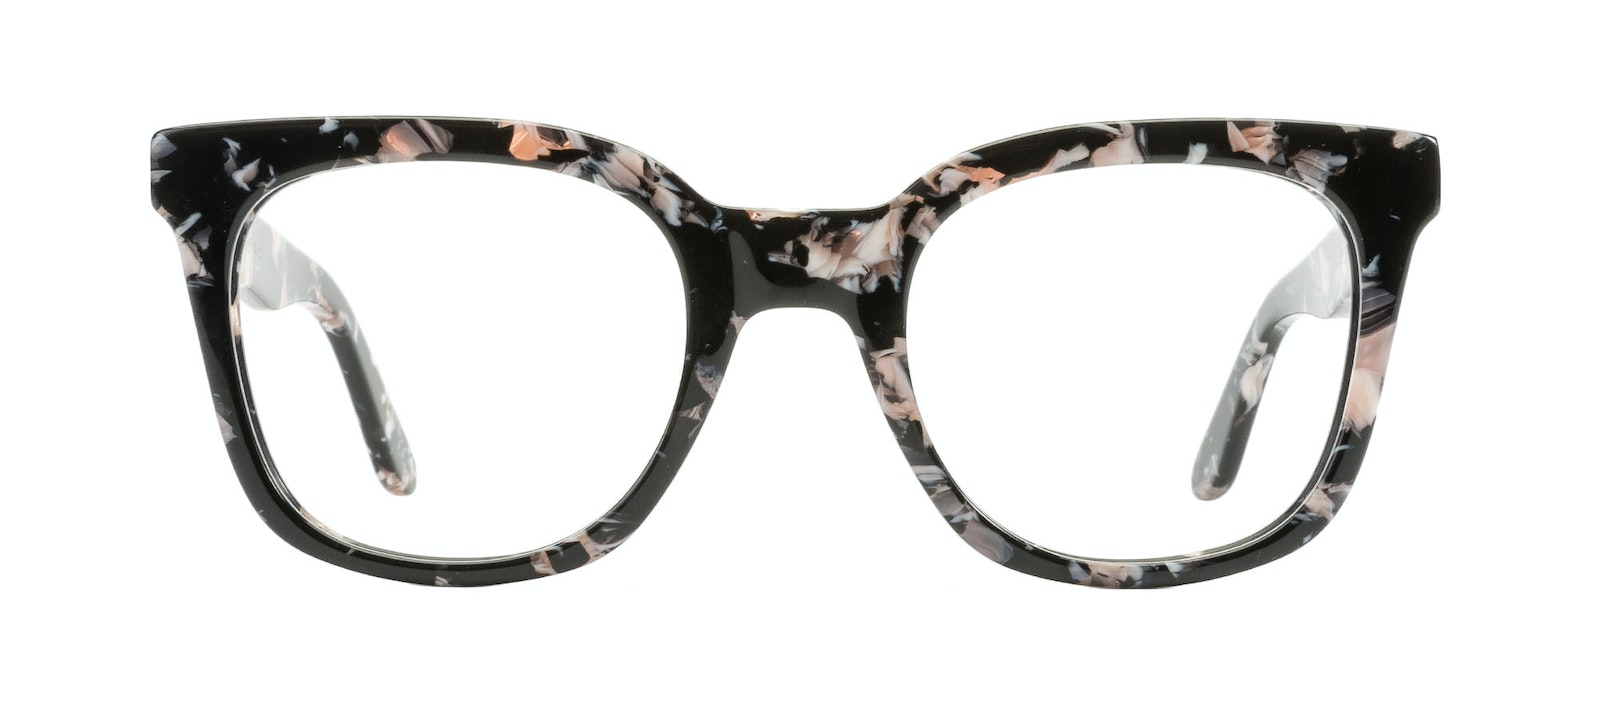 Affordable Fashion Glasses Rectangle Square Eyeglasses Women Jack & Norma Licorice Front